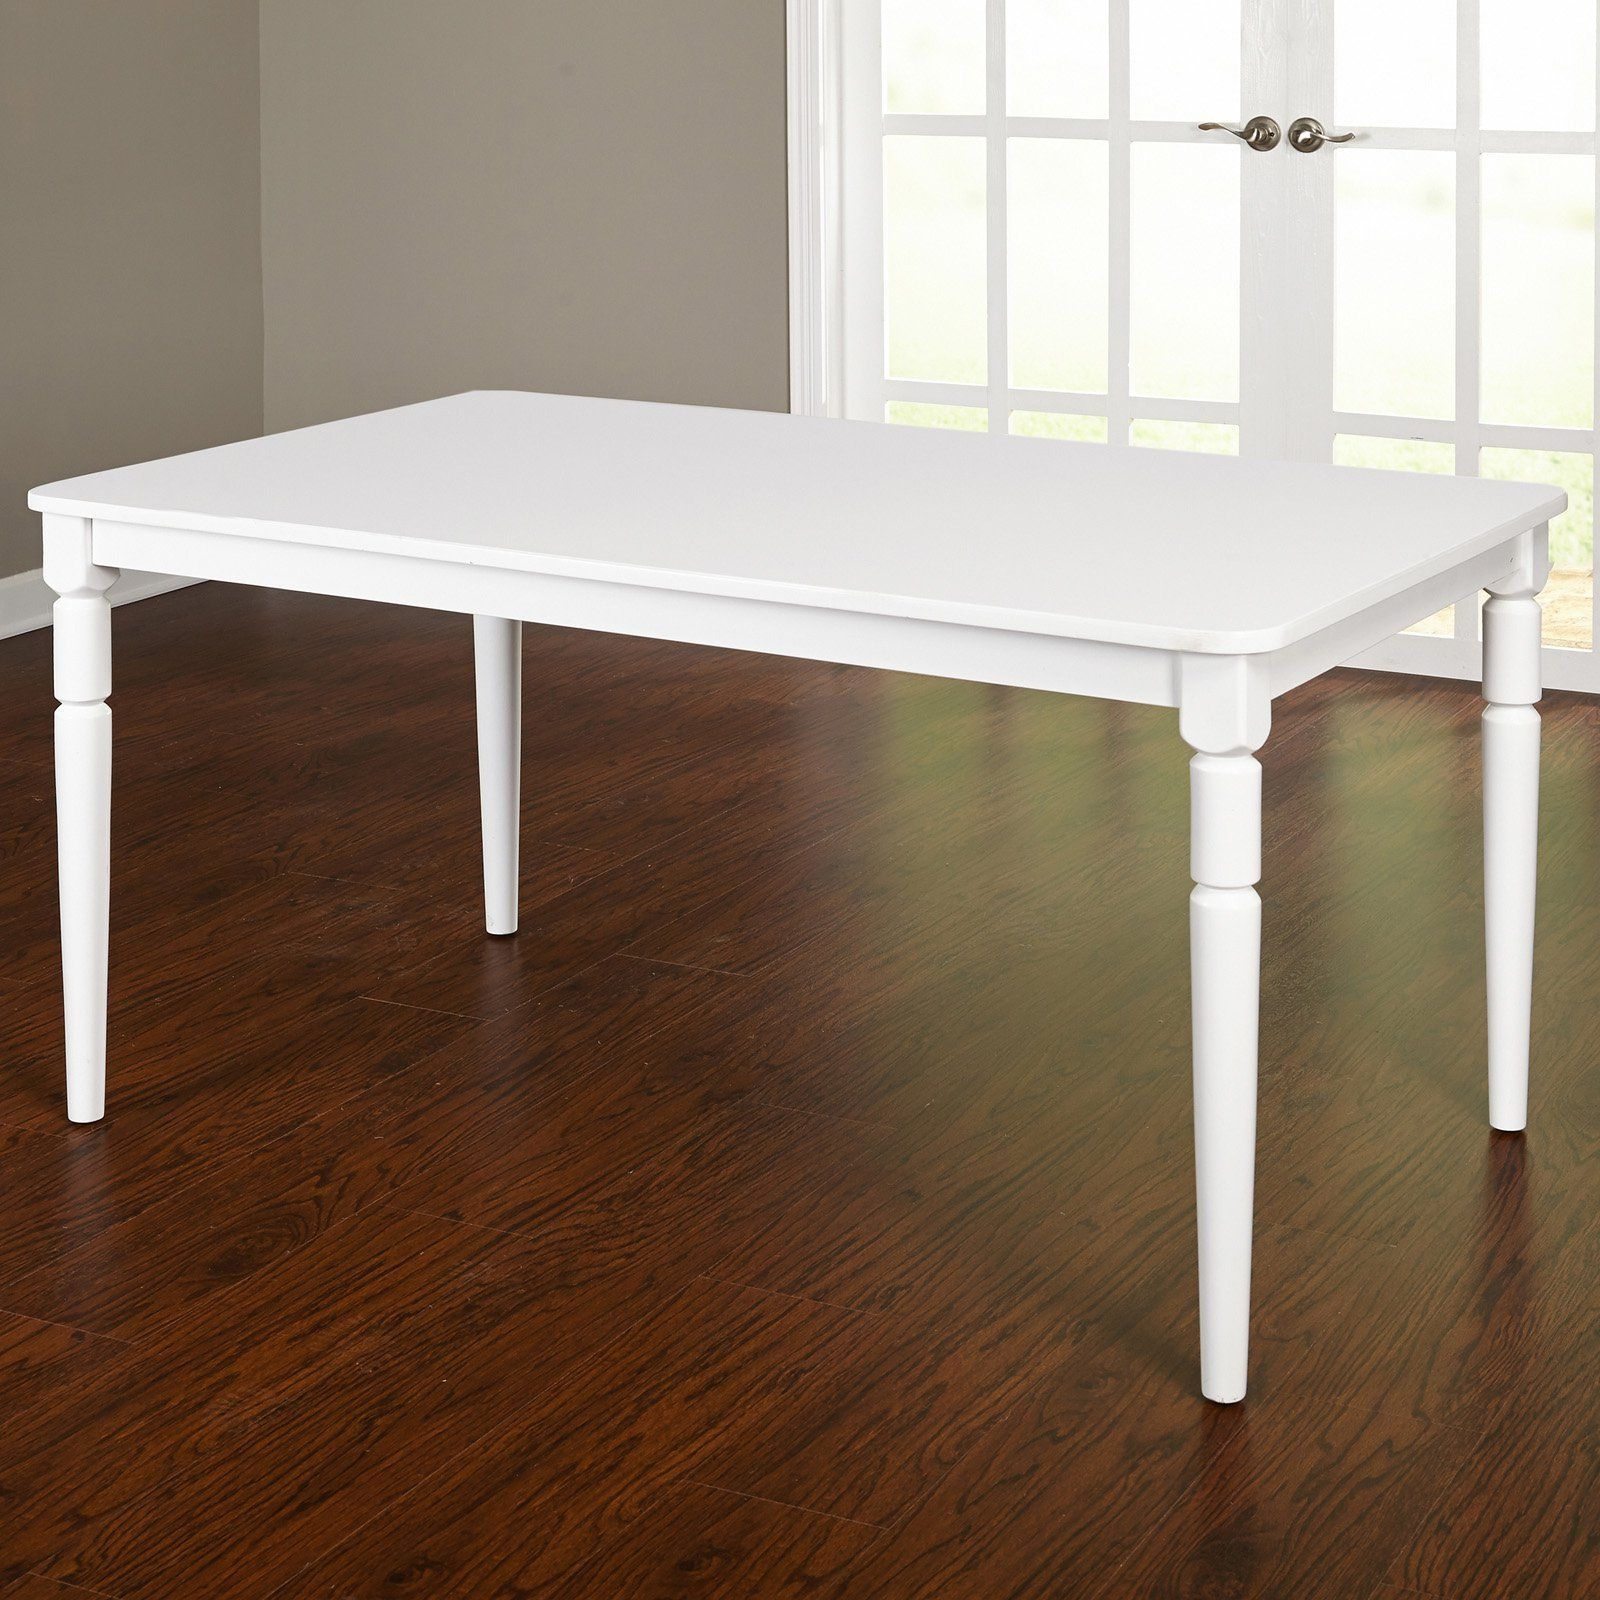 Target Marketing Systems Albury Dining Table  From Hayneedle  Dining Table Furniture